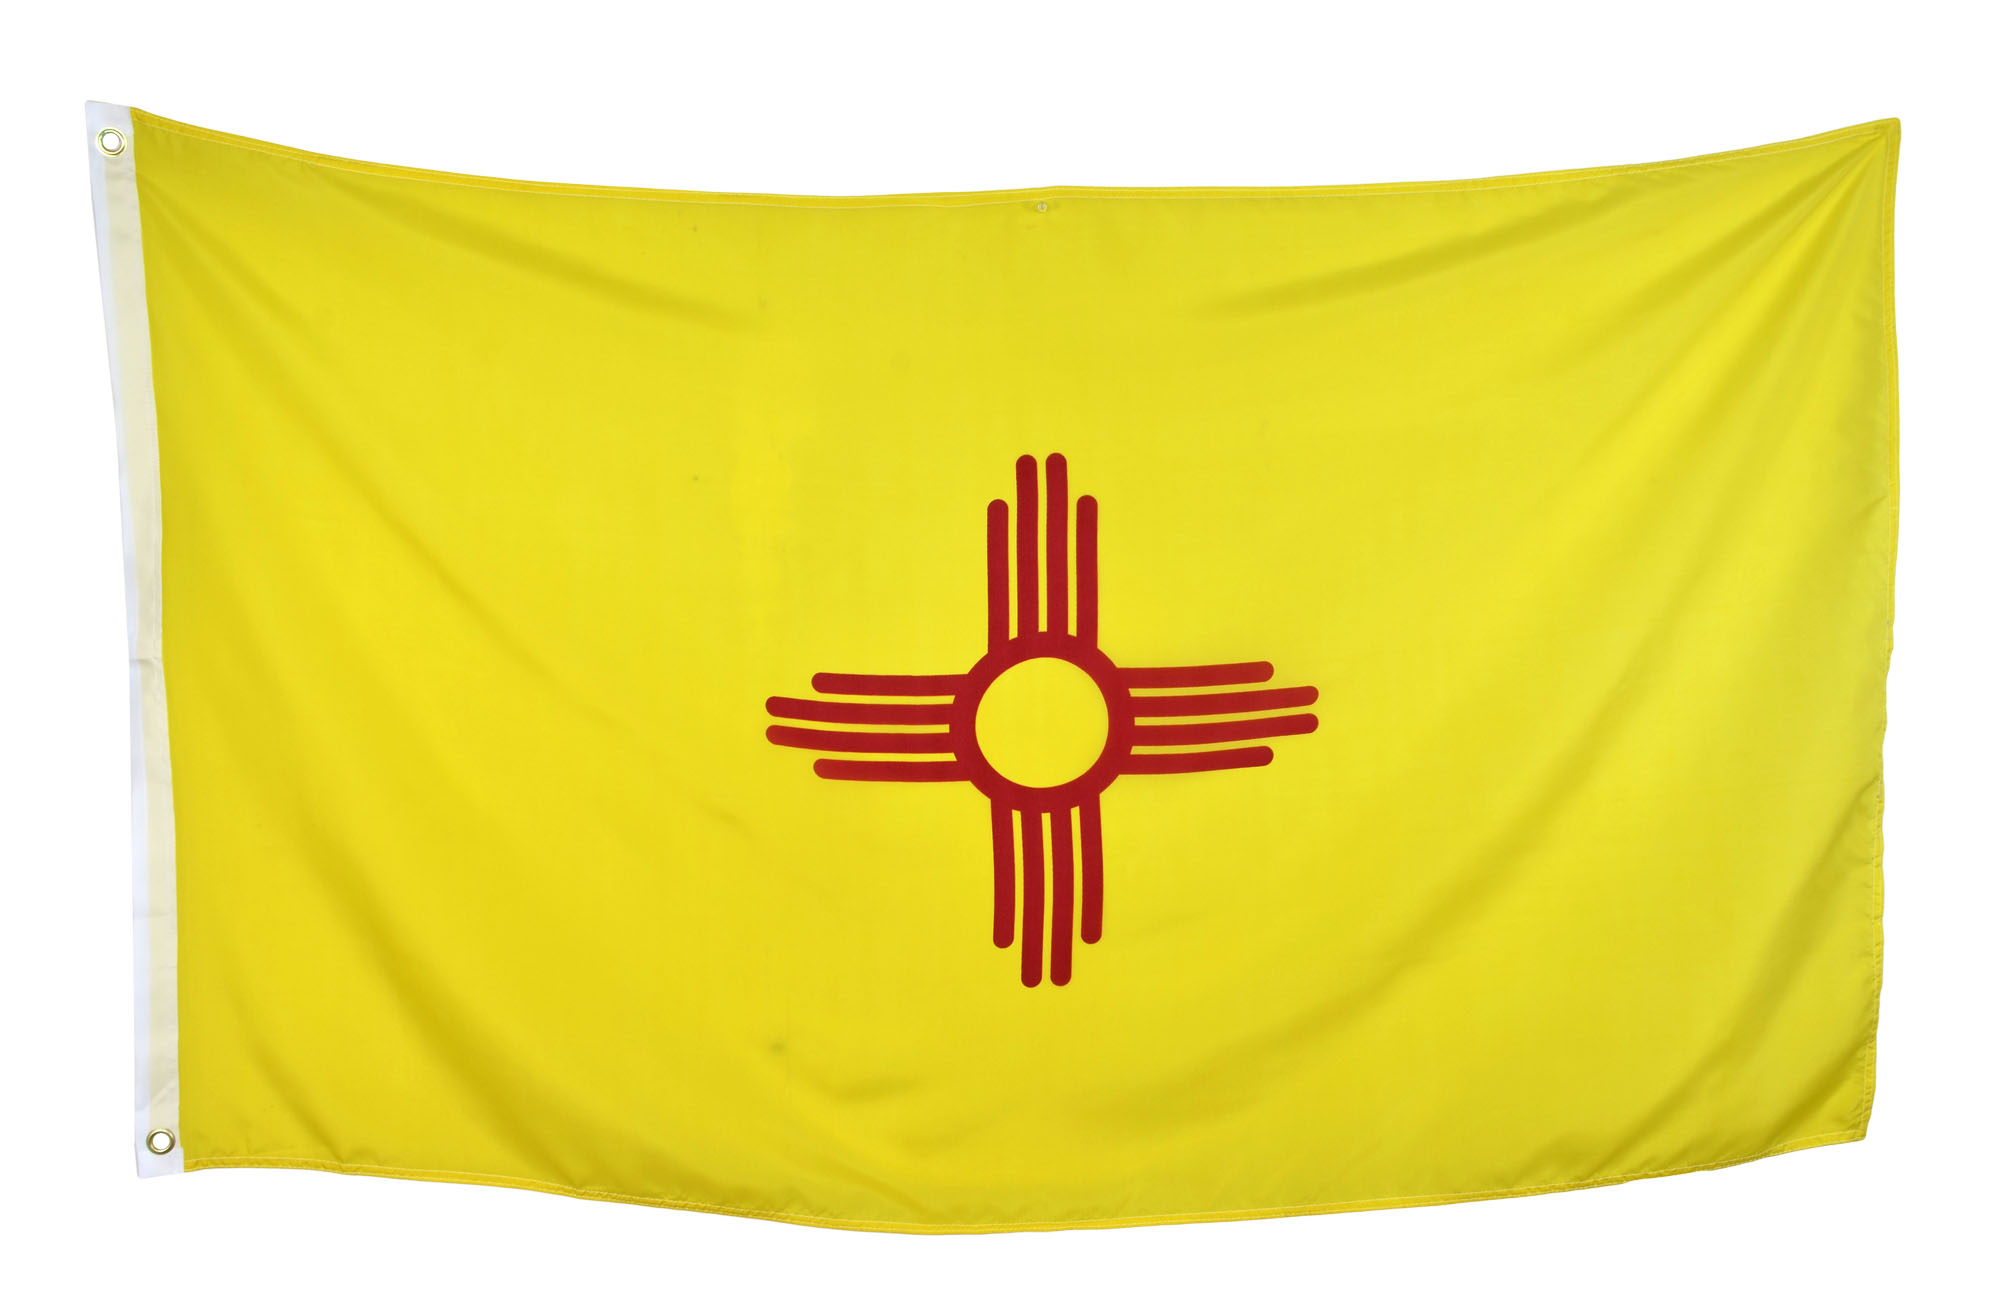 Shop72 US New Mexico State Flags - New Mexico Flag - 3x5' Flag from Sturdy 100D Polyester - Canvas Header Brass Grommets Double Stitched from Wind Sid